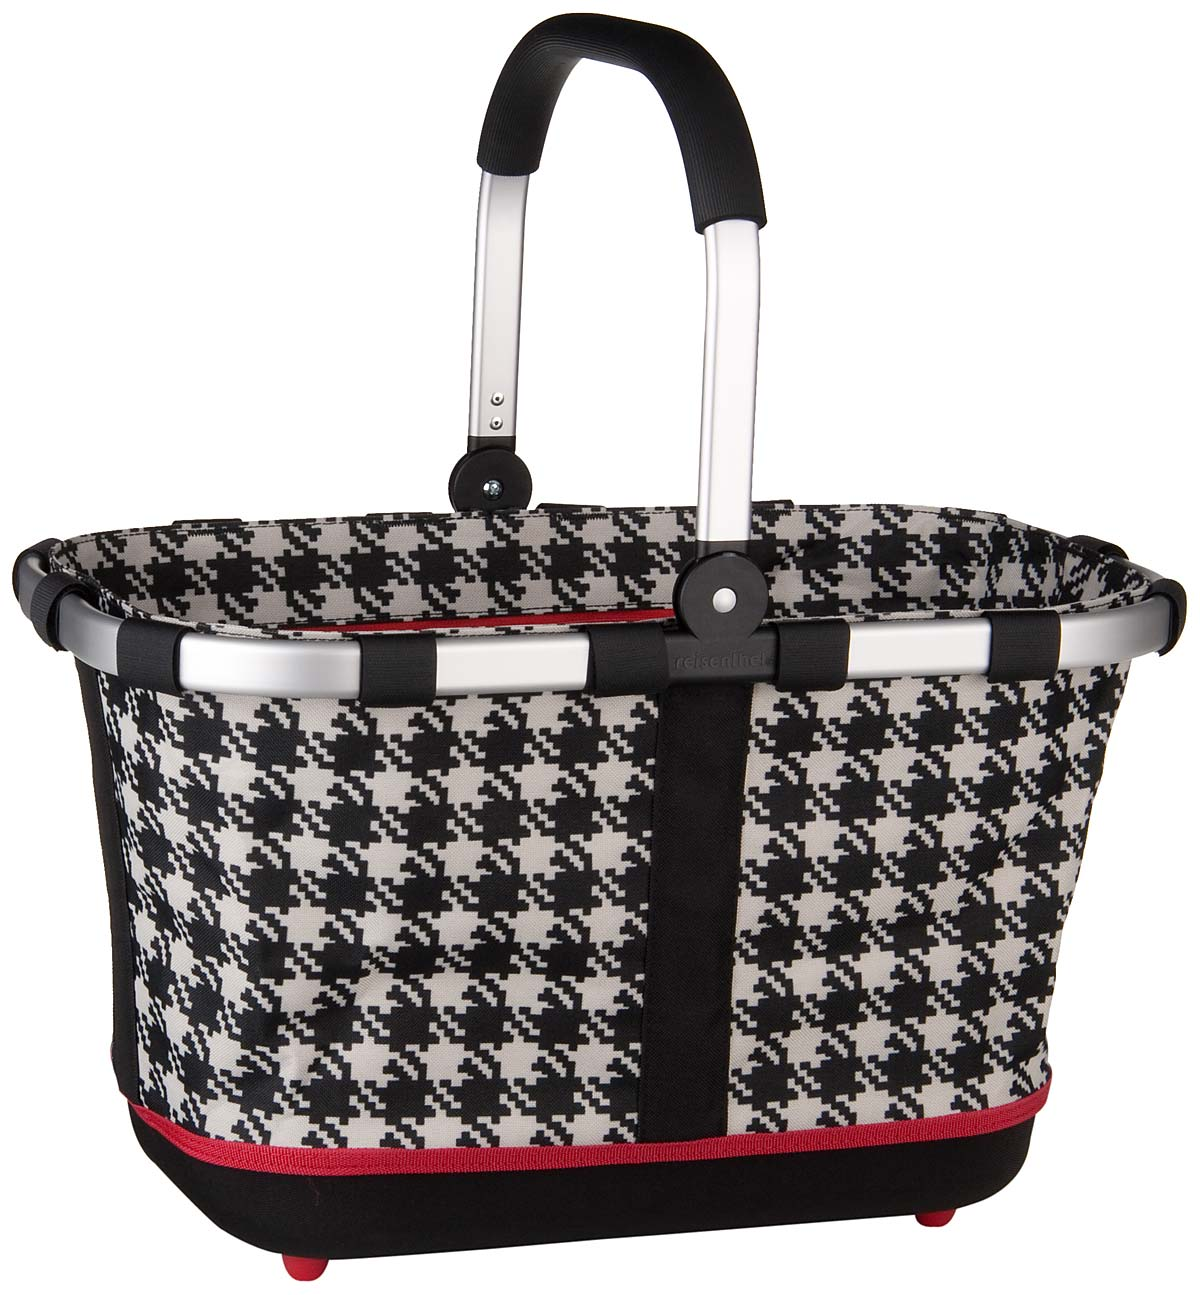 reisenthel carrybag 2 Fifties Black - Einkaufst...